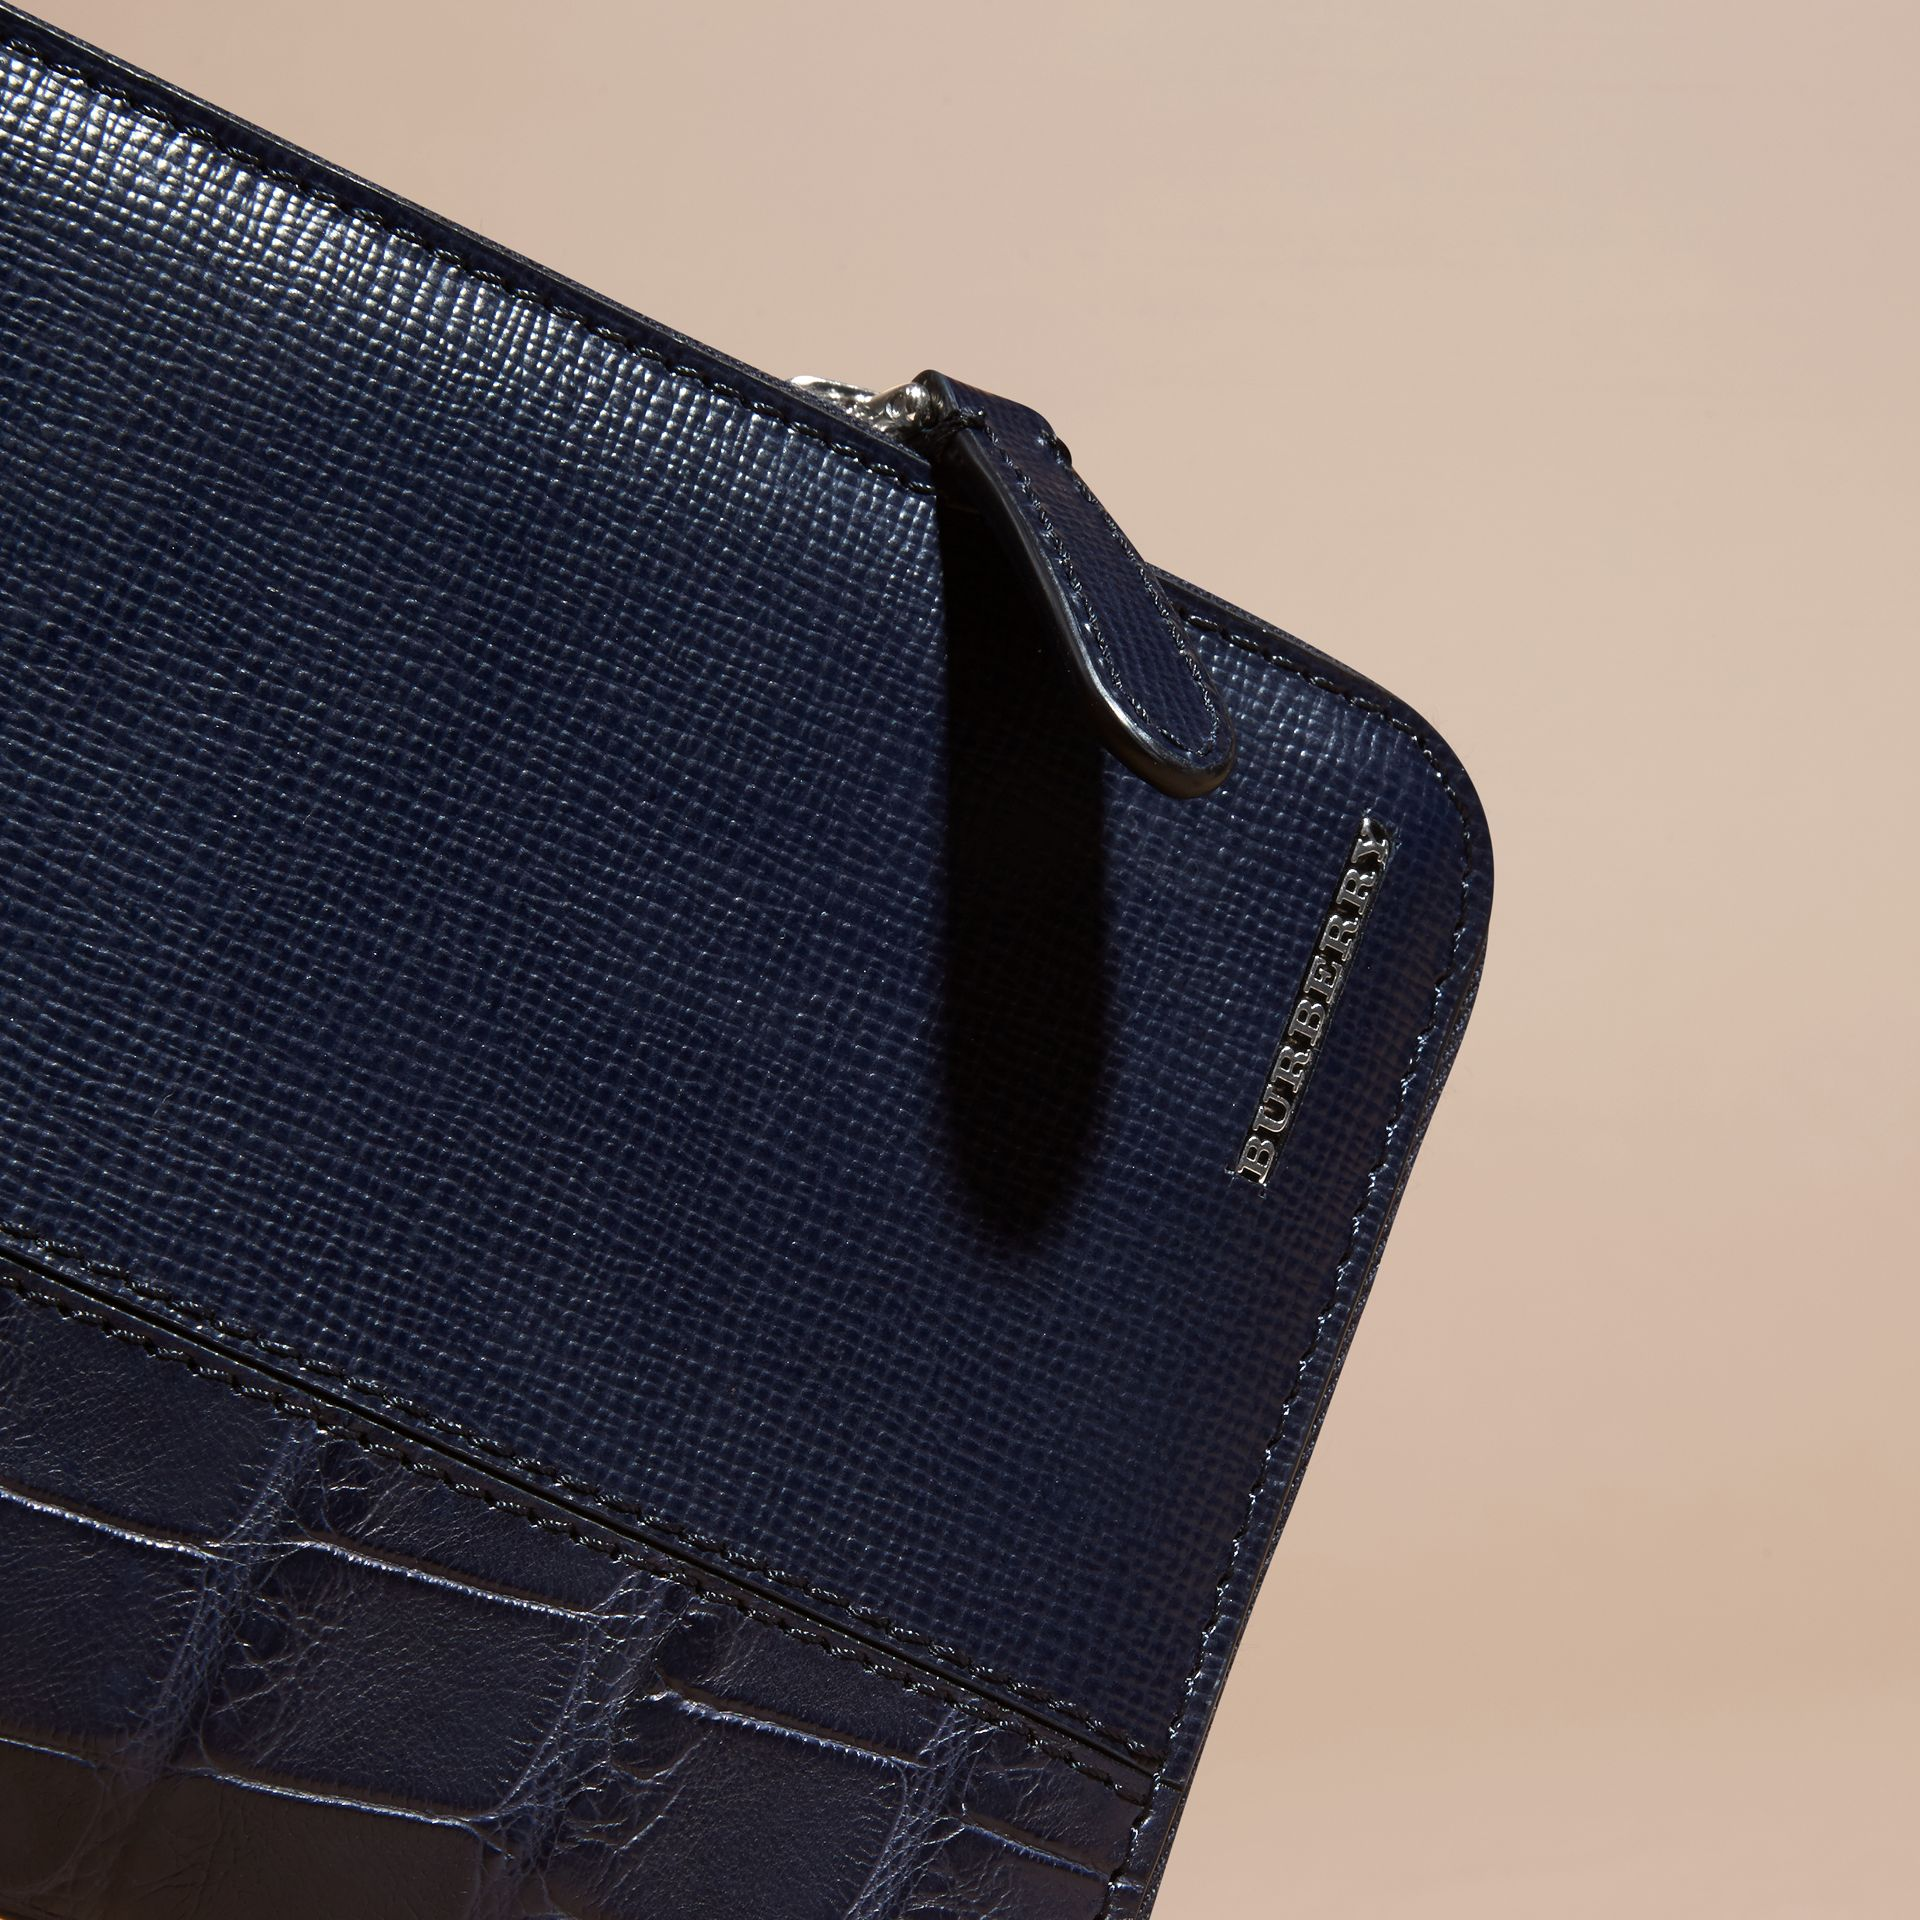 London Leather and Alligator Ziparound Wallet in Dark Navy - Men | Burberry - gallery image 1